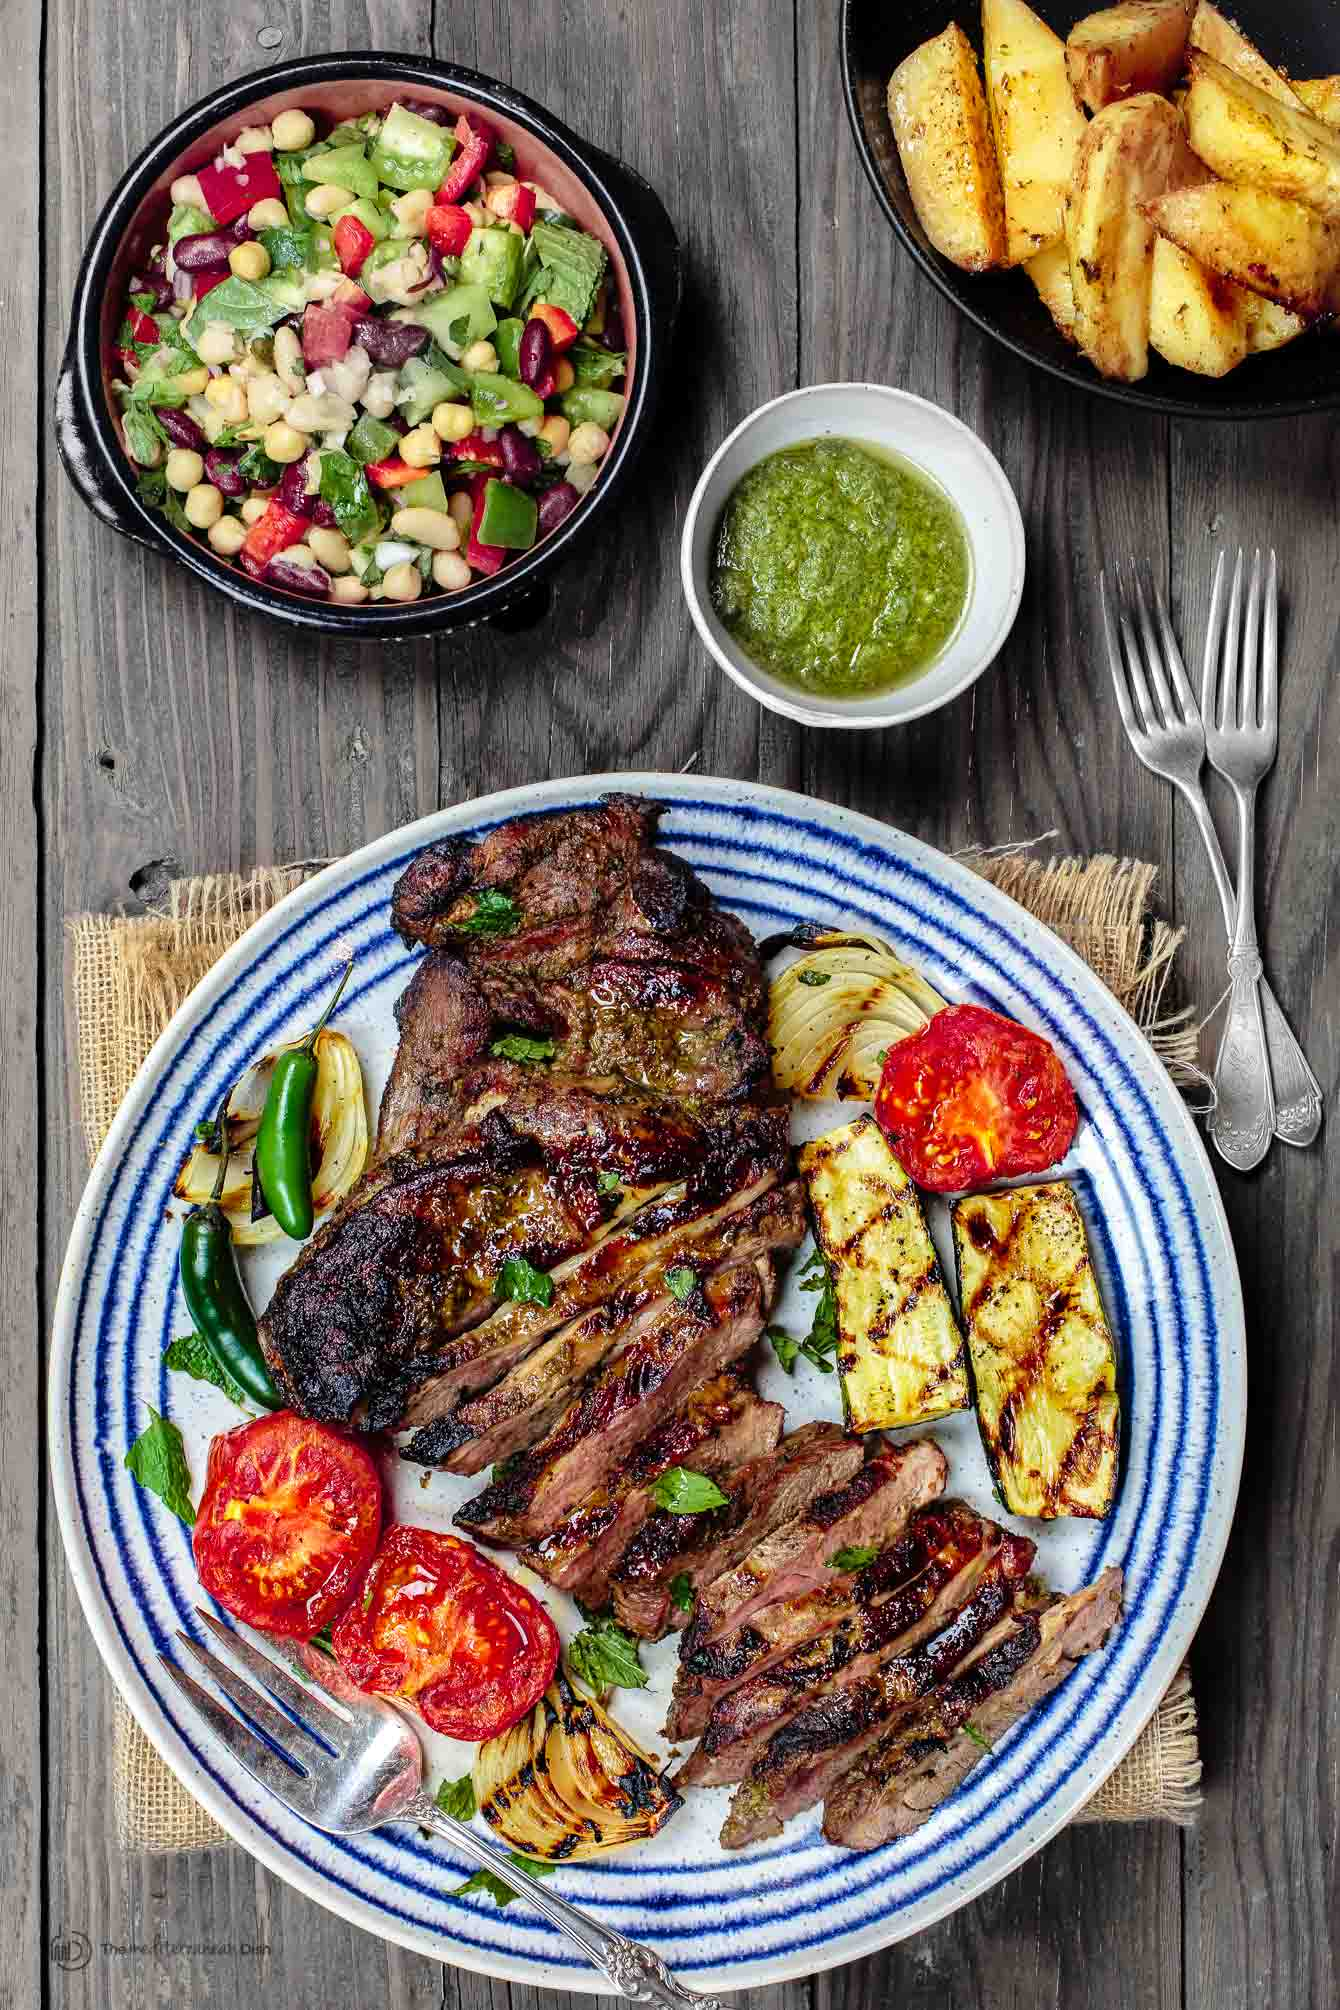 Mediterranean Grilled Lamb served with a vegetable salad and roasted potatoes